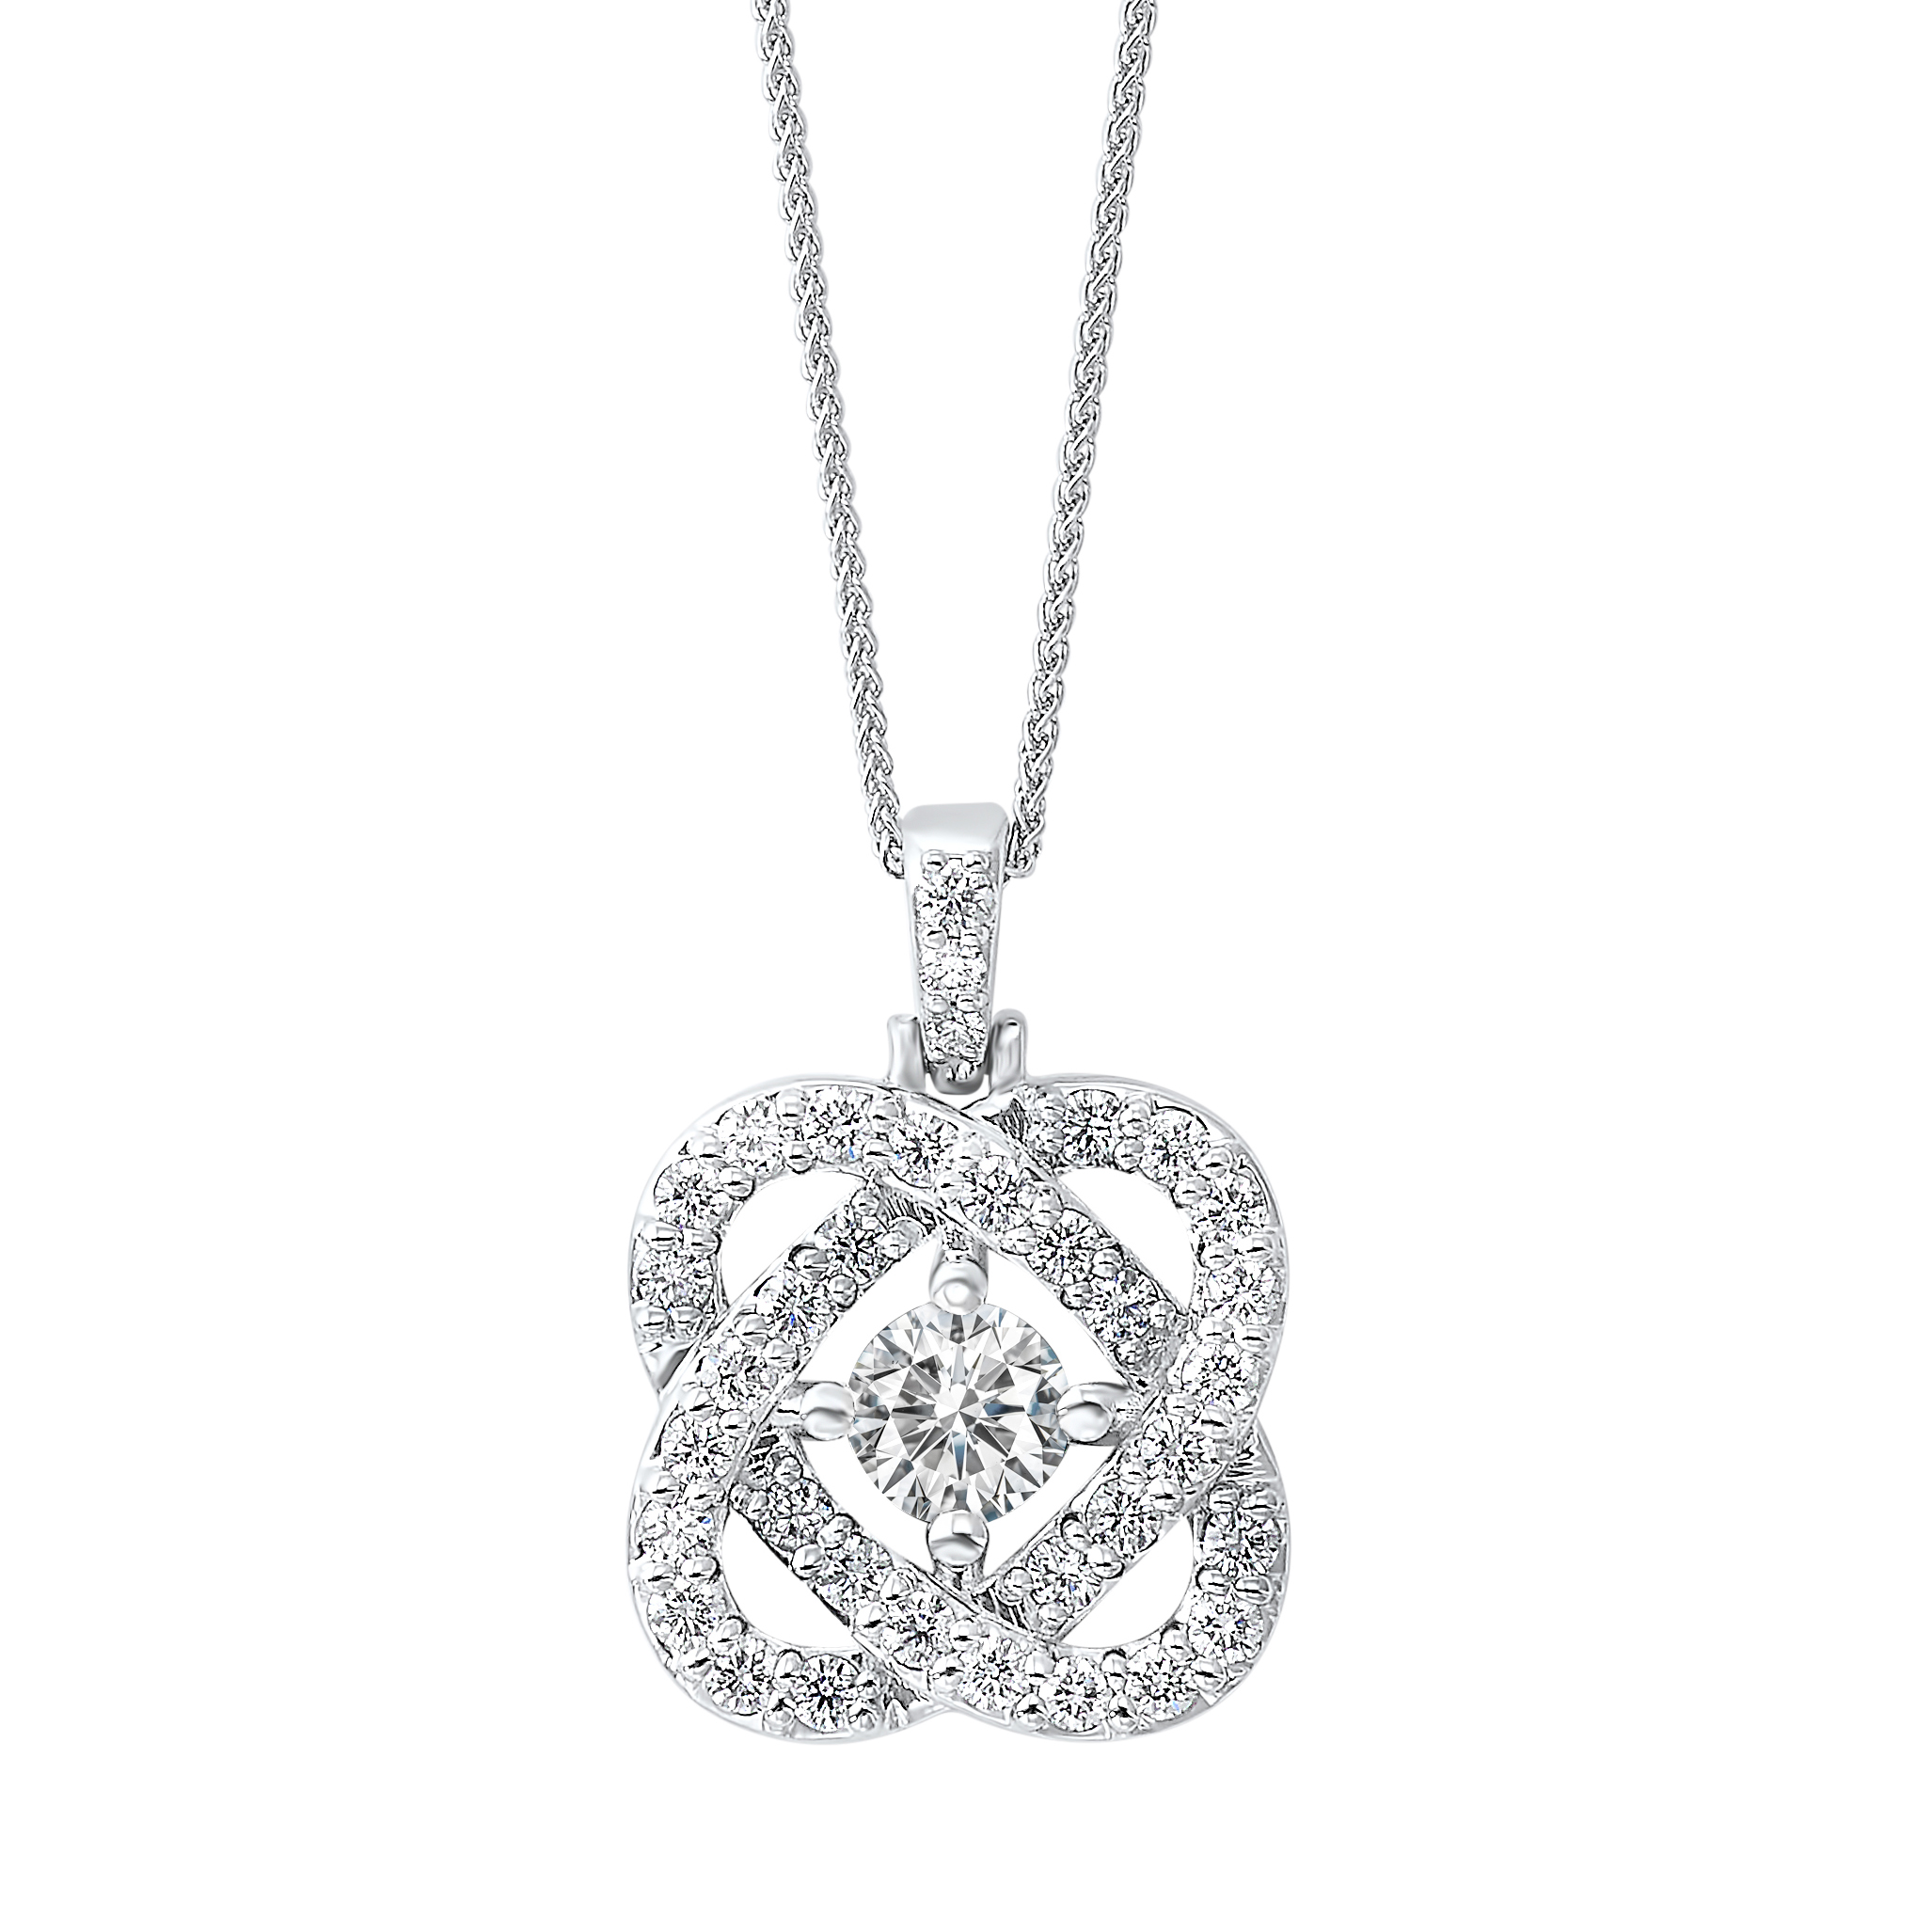 Love's Crossing Diamond Pendant in Sterling Silver (1/4 ct. tw.) Moseley Diamond Showcase Inc Columbia, SC